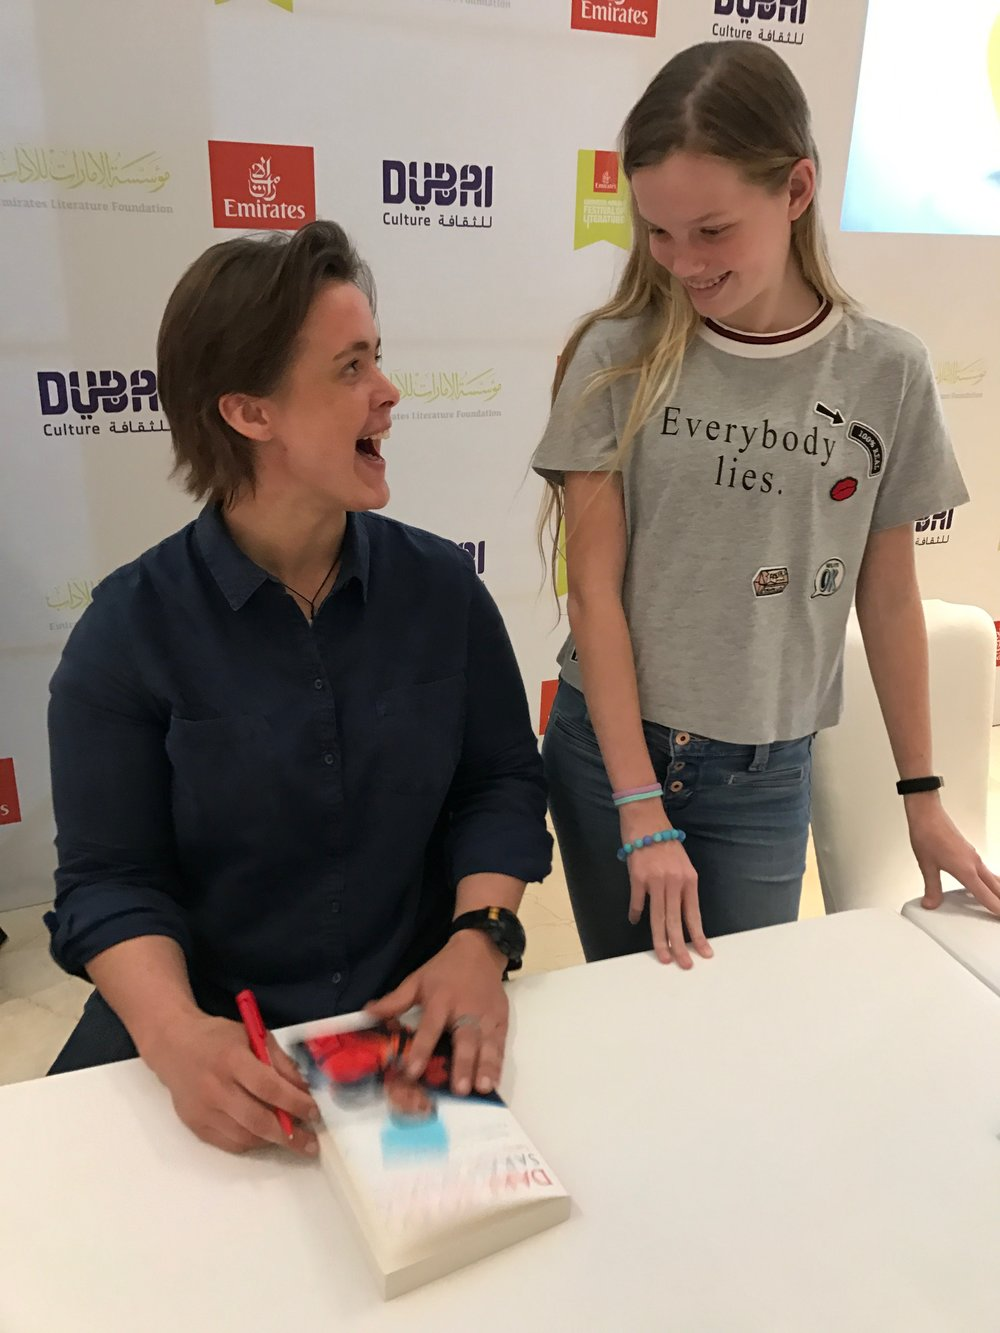 Sarah Outen - She is such an extraordinary adventurer, Sarah sailed single-handedly around the world, from London to London. Such an inspiration and a truly brilliant book, a must read.More about Sarah HERE